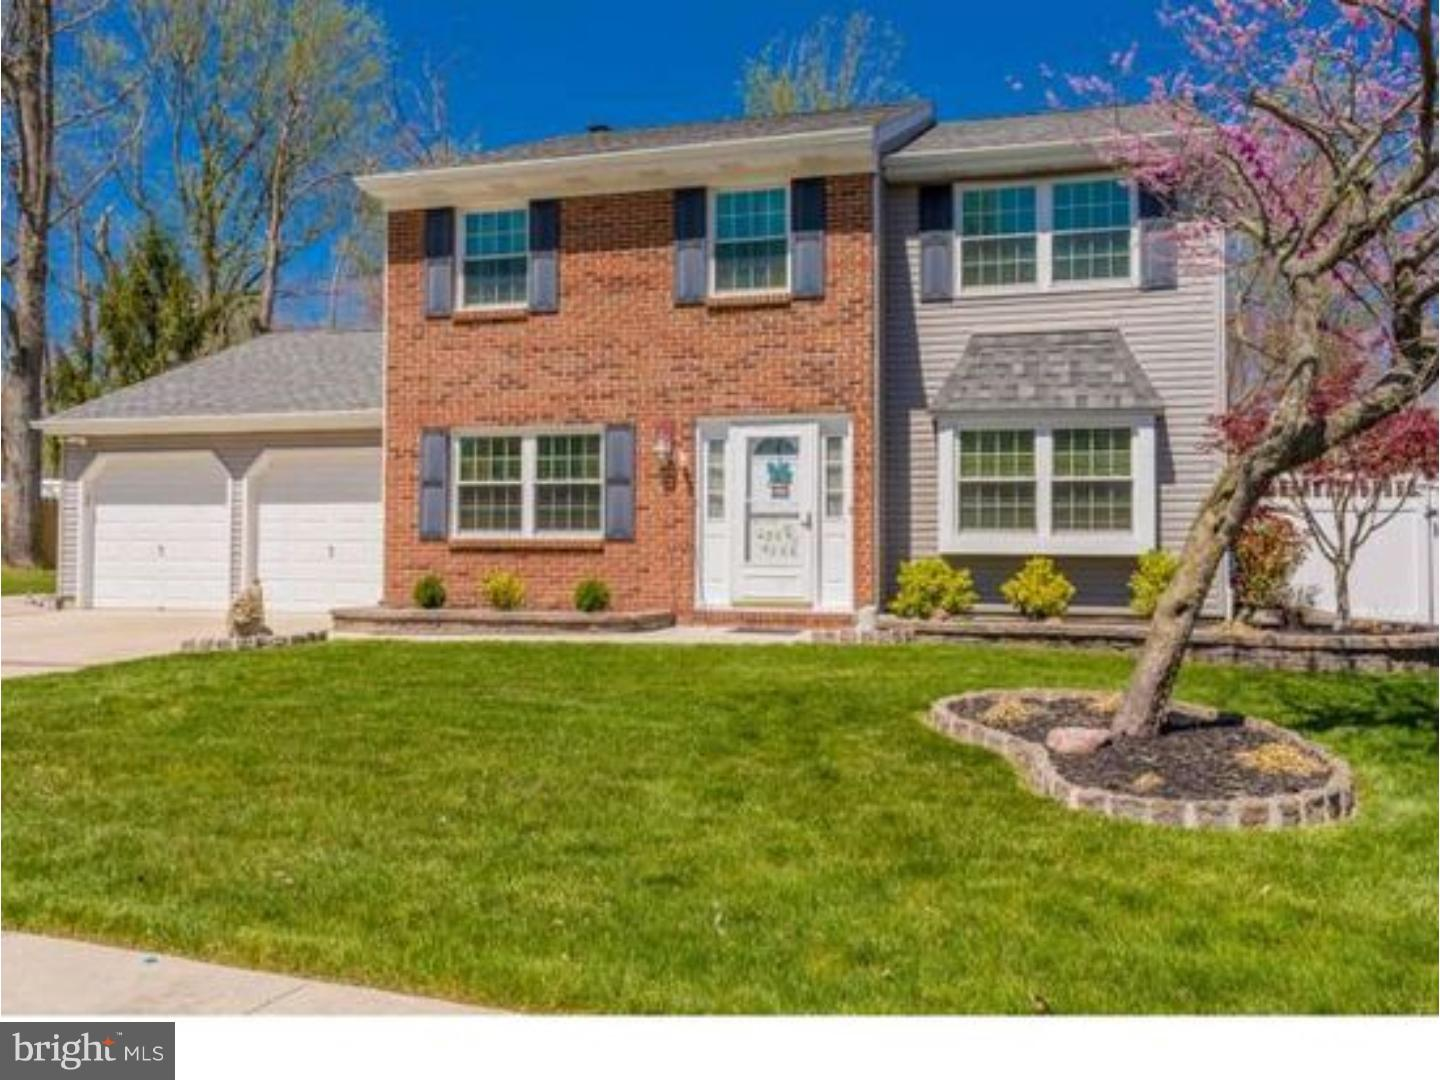 Single Family Home for Sale at 10 PALOMINO Trail Turnersville, New Jersey 08080 United States